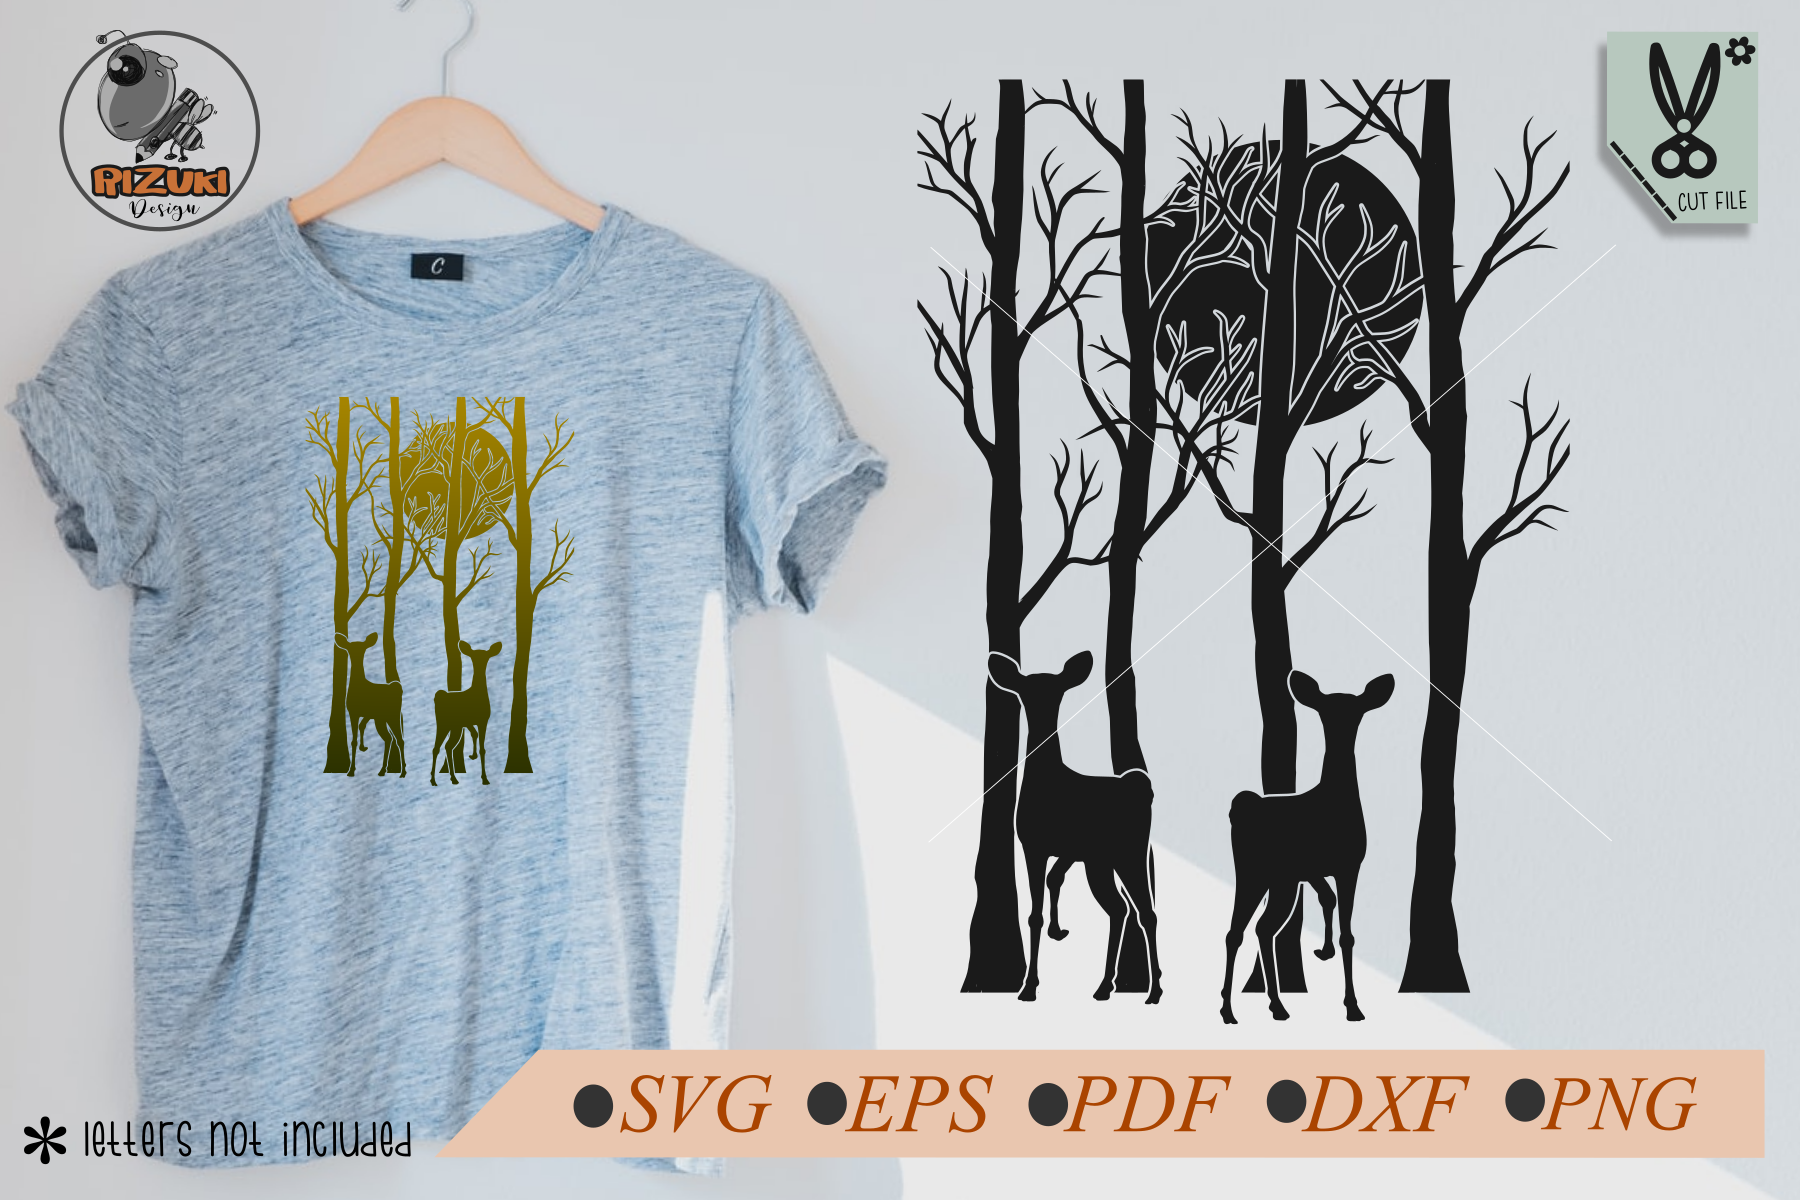 Silhouette Of A Deer In The Midnight Graphic By Rizuki Store